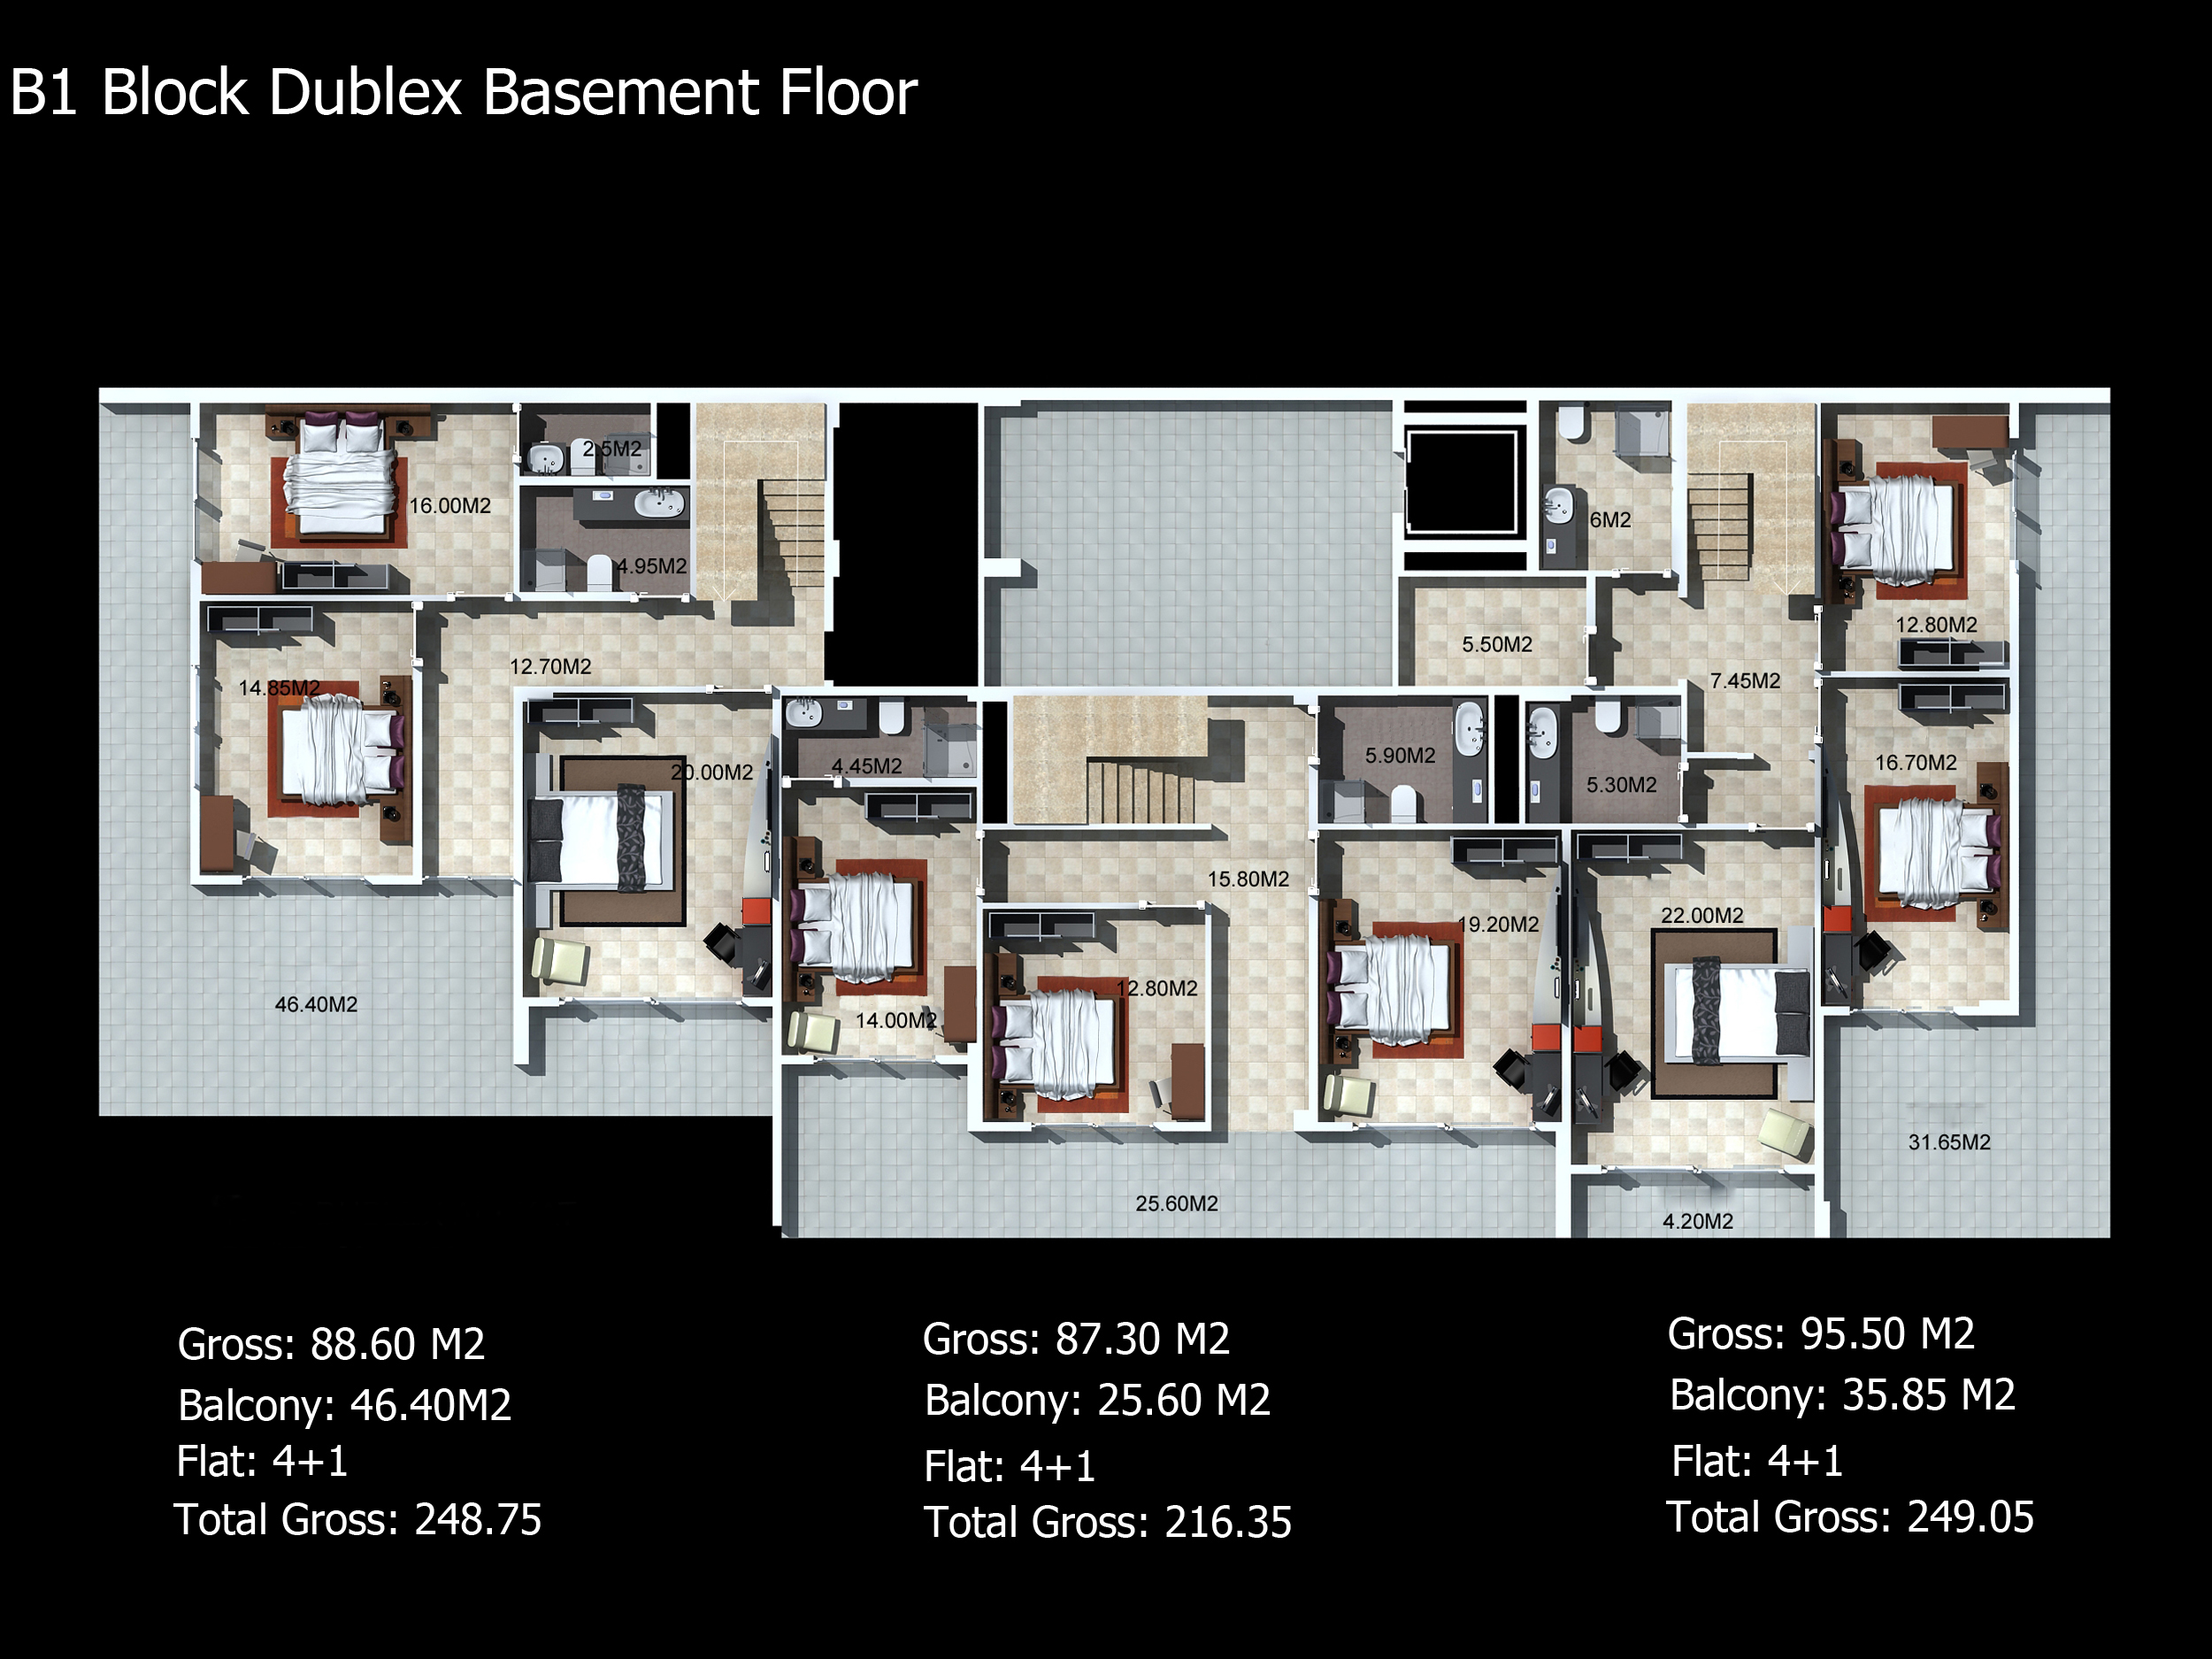 b1-block-dublex-basement-floor